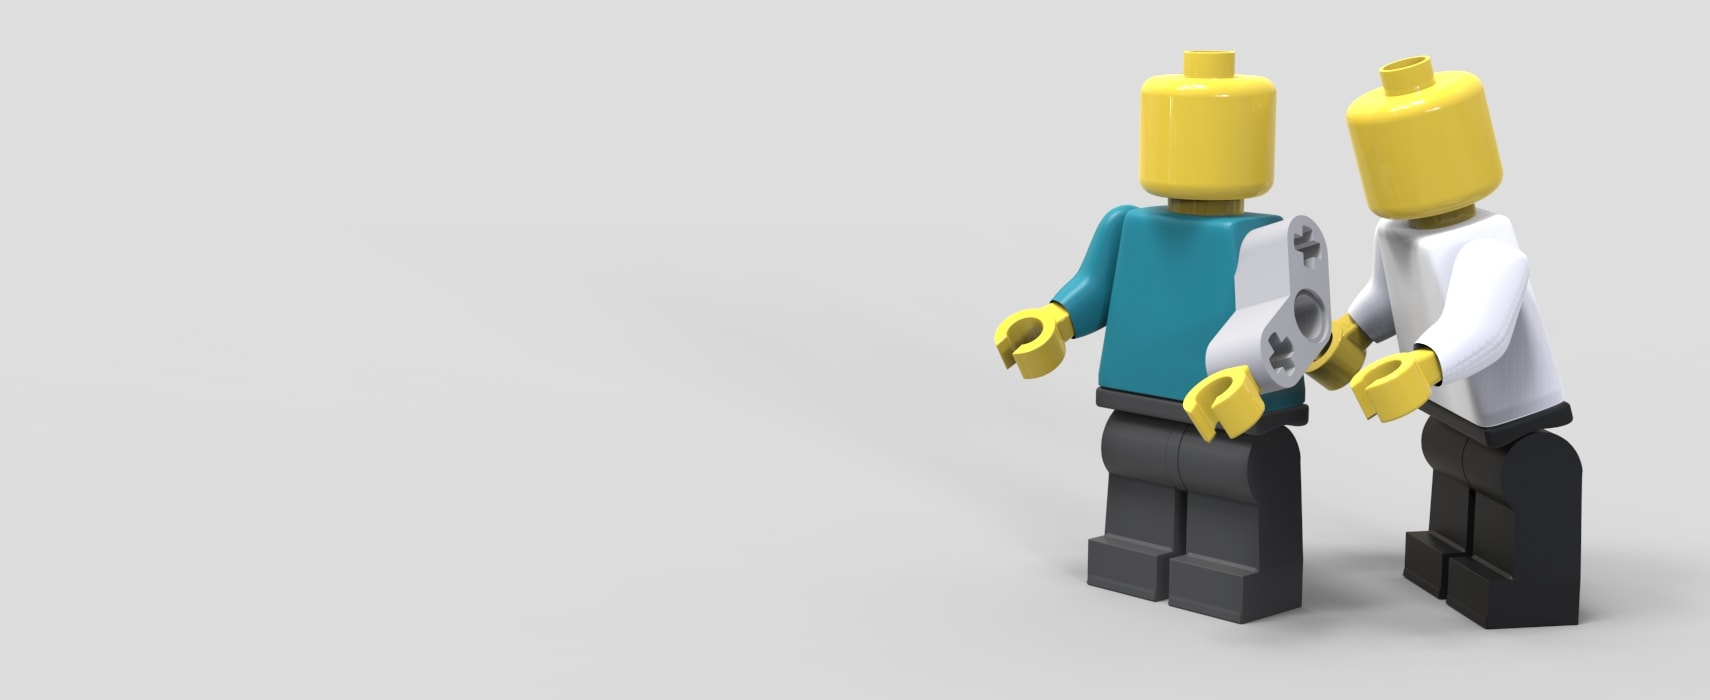 Lego man with bionic arm, depicting design of medical devices